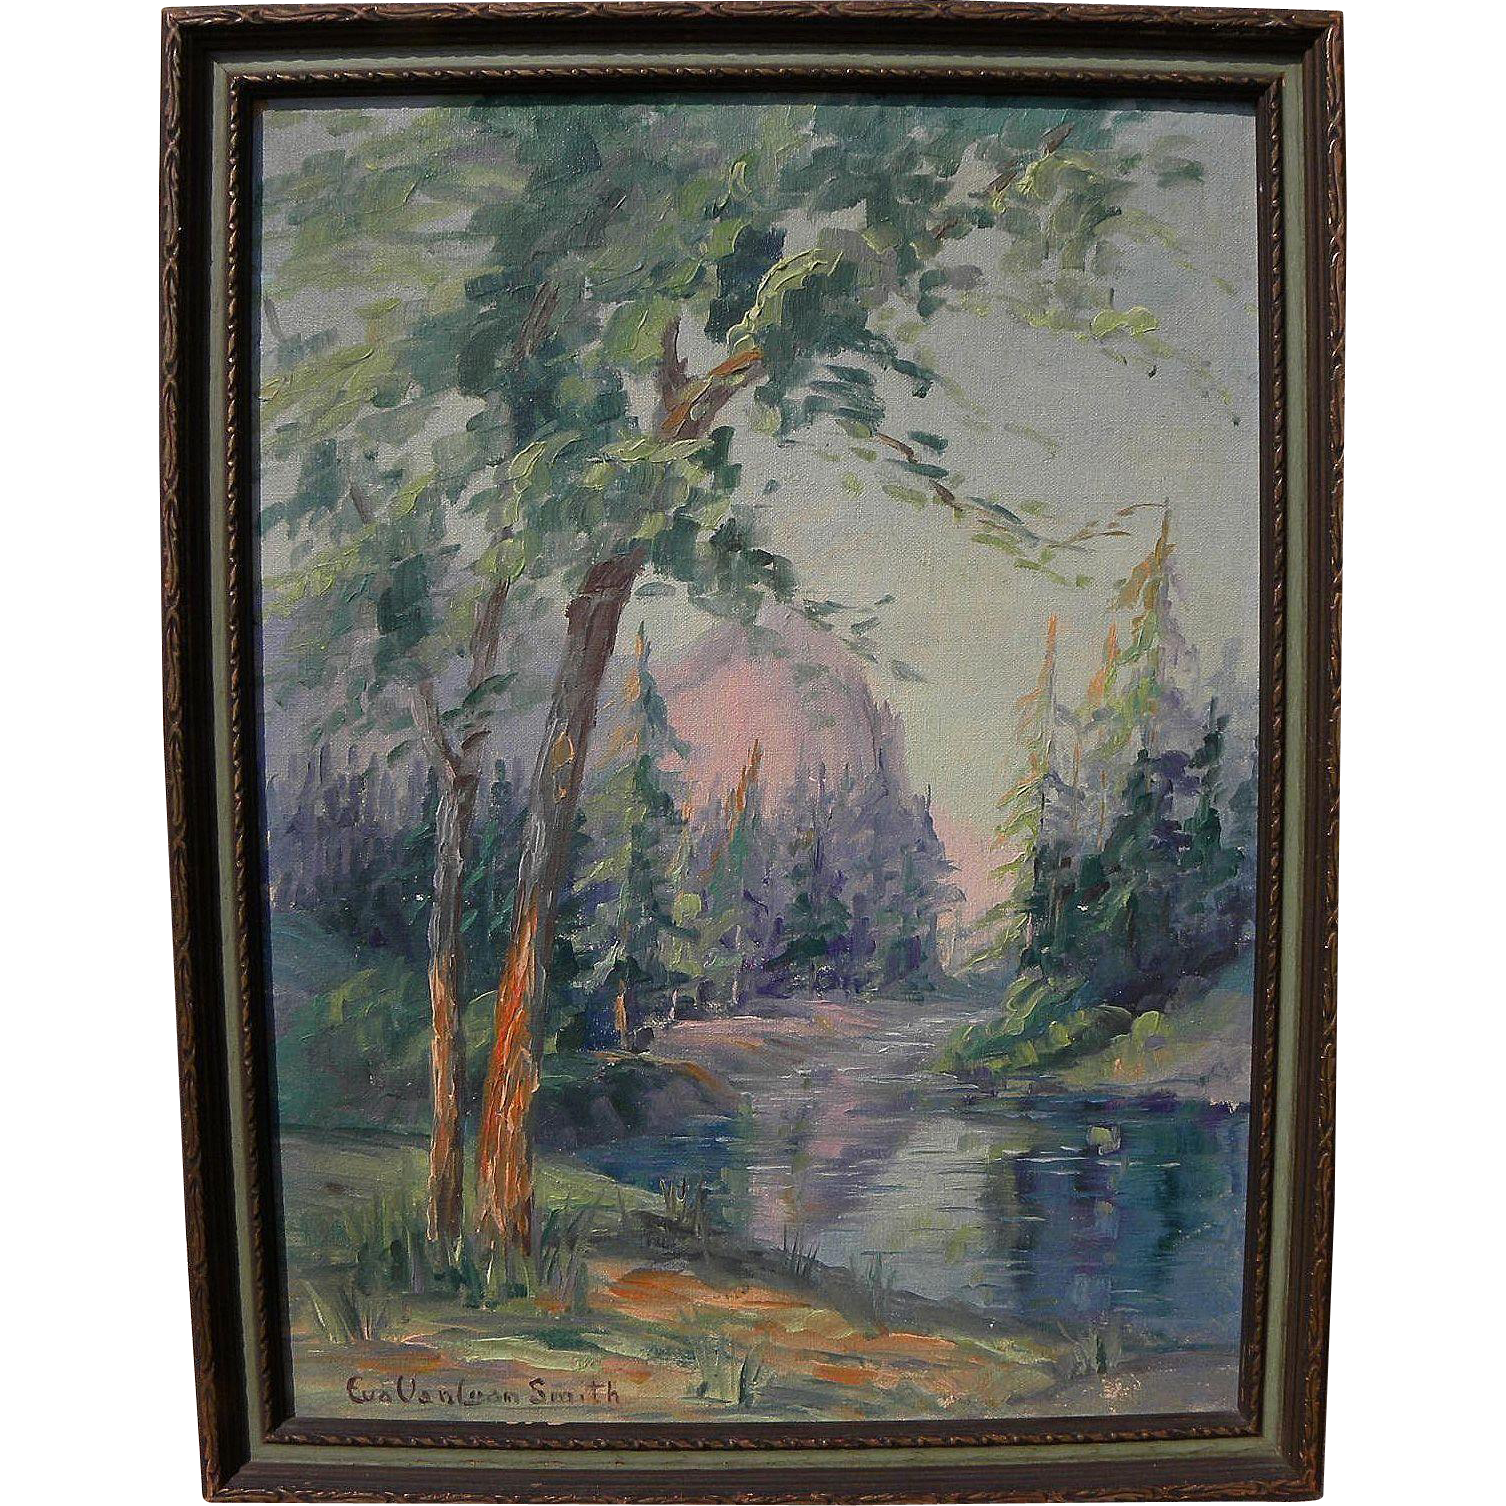 EVA VANLOAN SMITH (1890-1982) California plein air art landscape painting possibly Yosemite